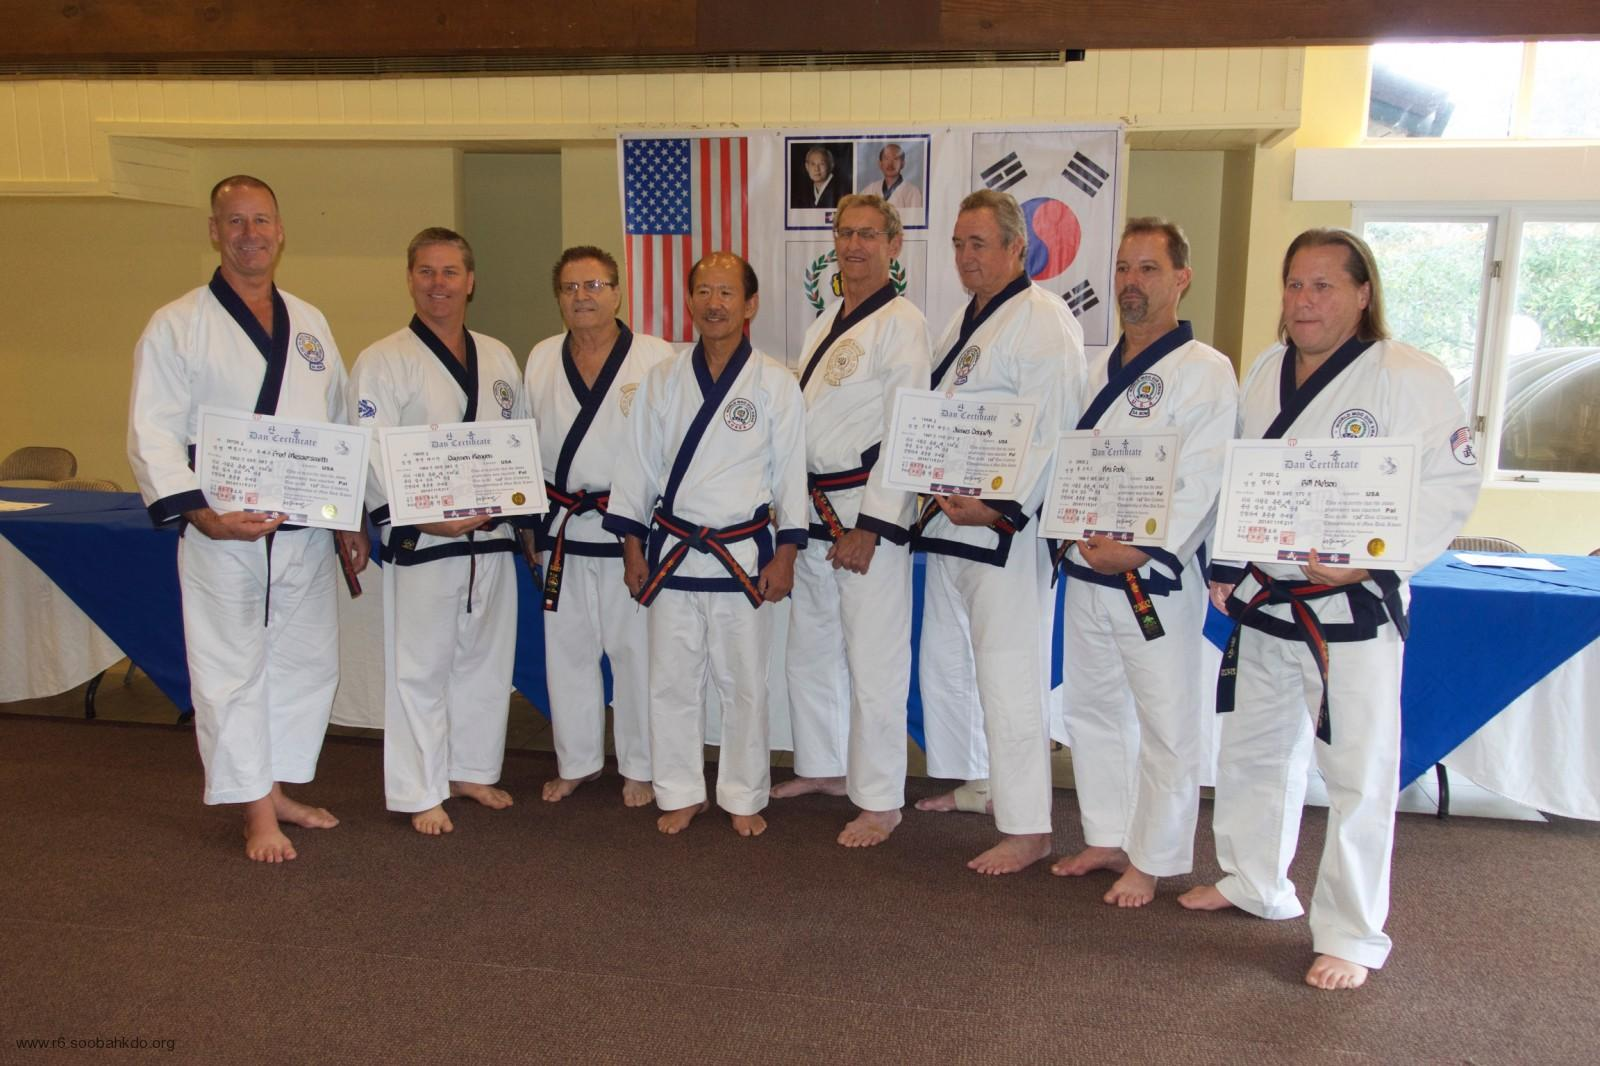 Moo Duk Kwan 8th Dans Receive Certificates